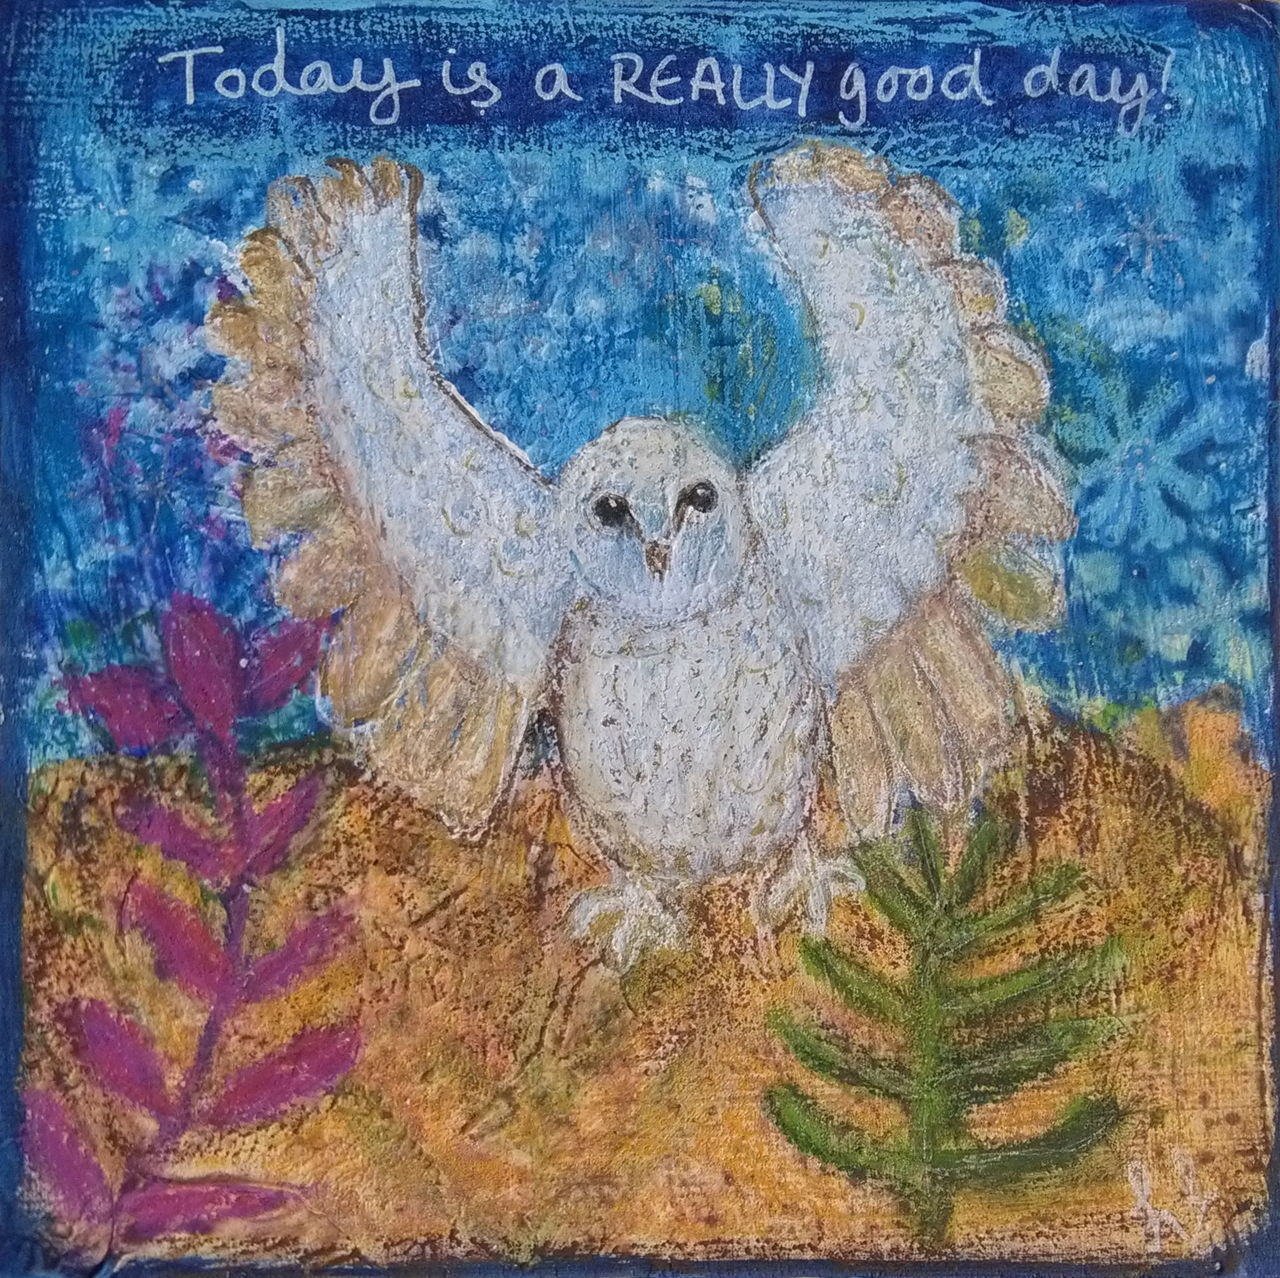 Imagine 'Living life in peace' Saturdaysong_eyeemchallenge Today Is A Really Good Day Heather Fifield Art Painted Birds Skwirrel Heaven Getting Inspired Love Peace Following My Bliss White Bird Owl Life Is Magical